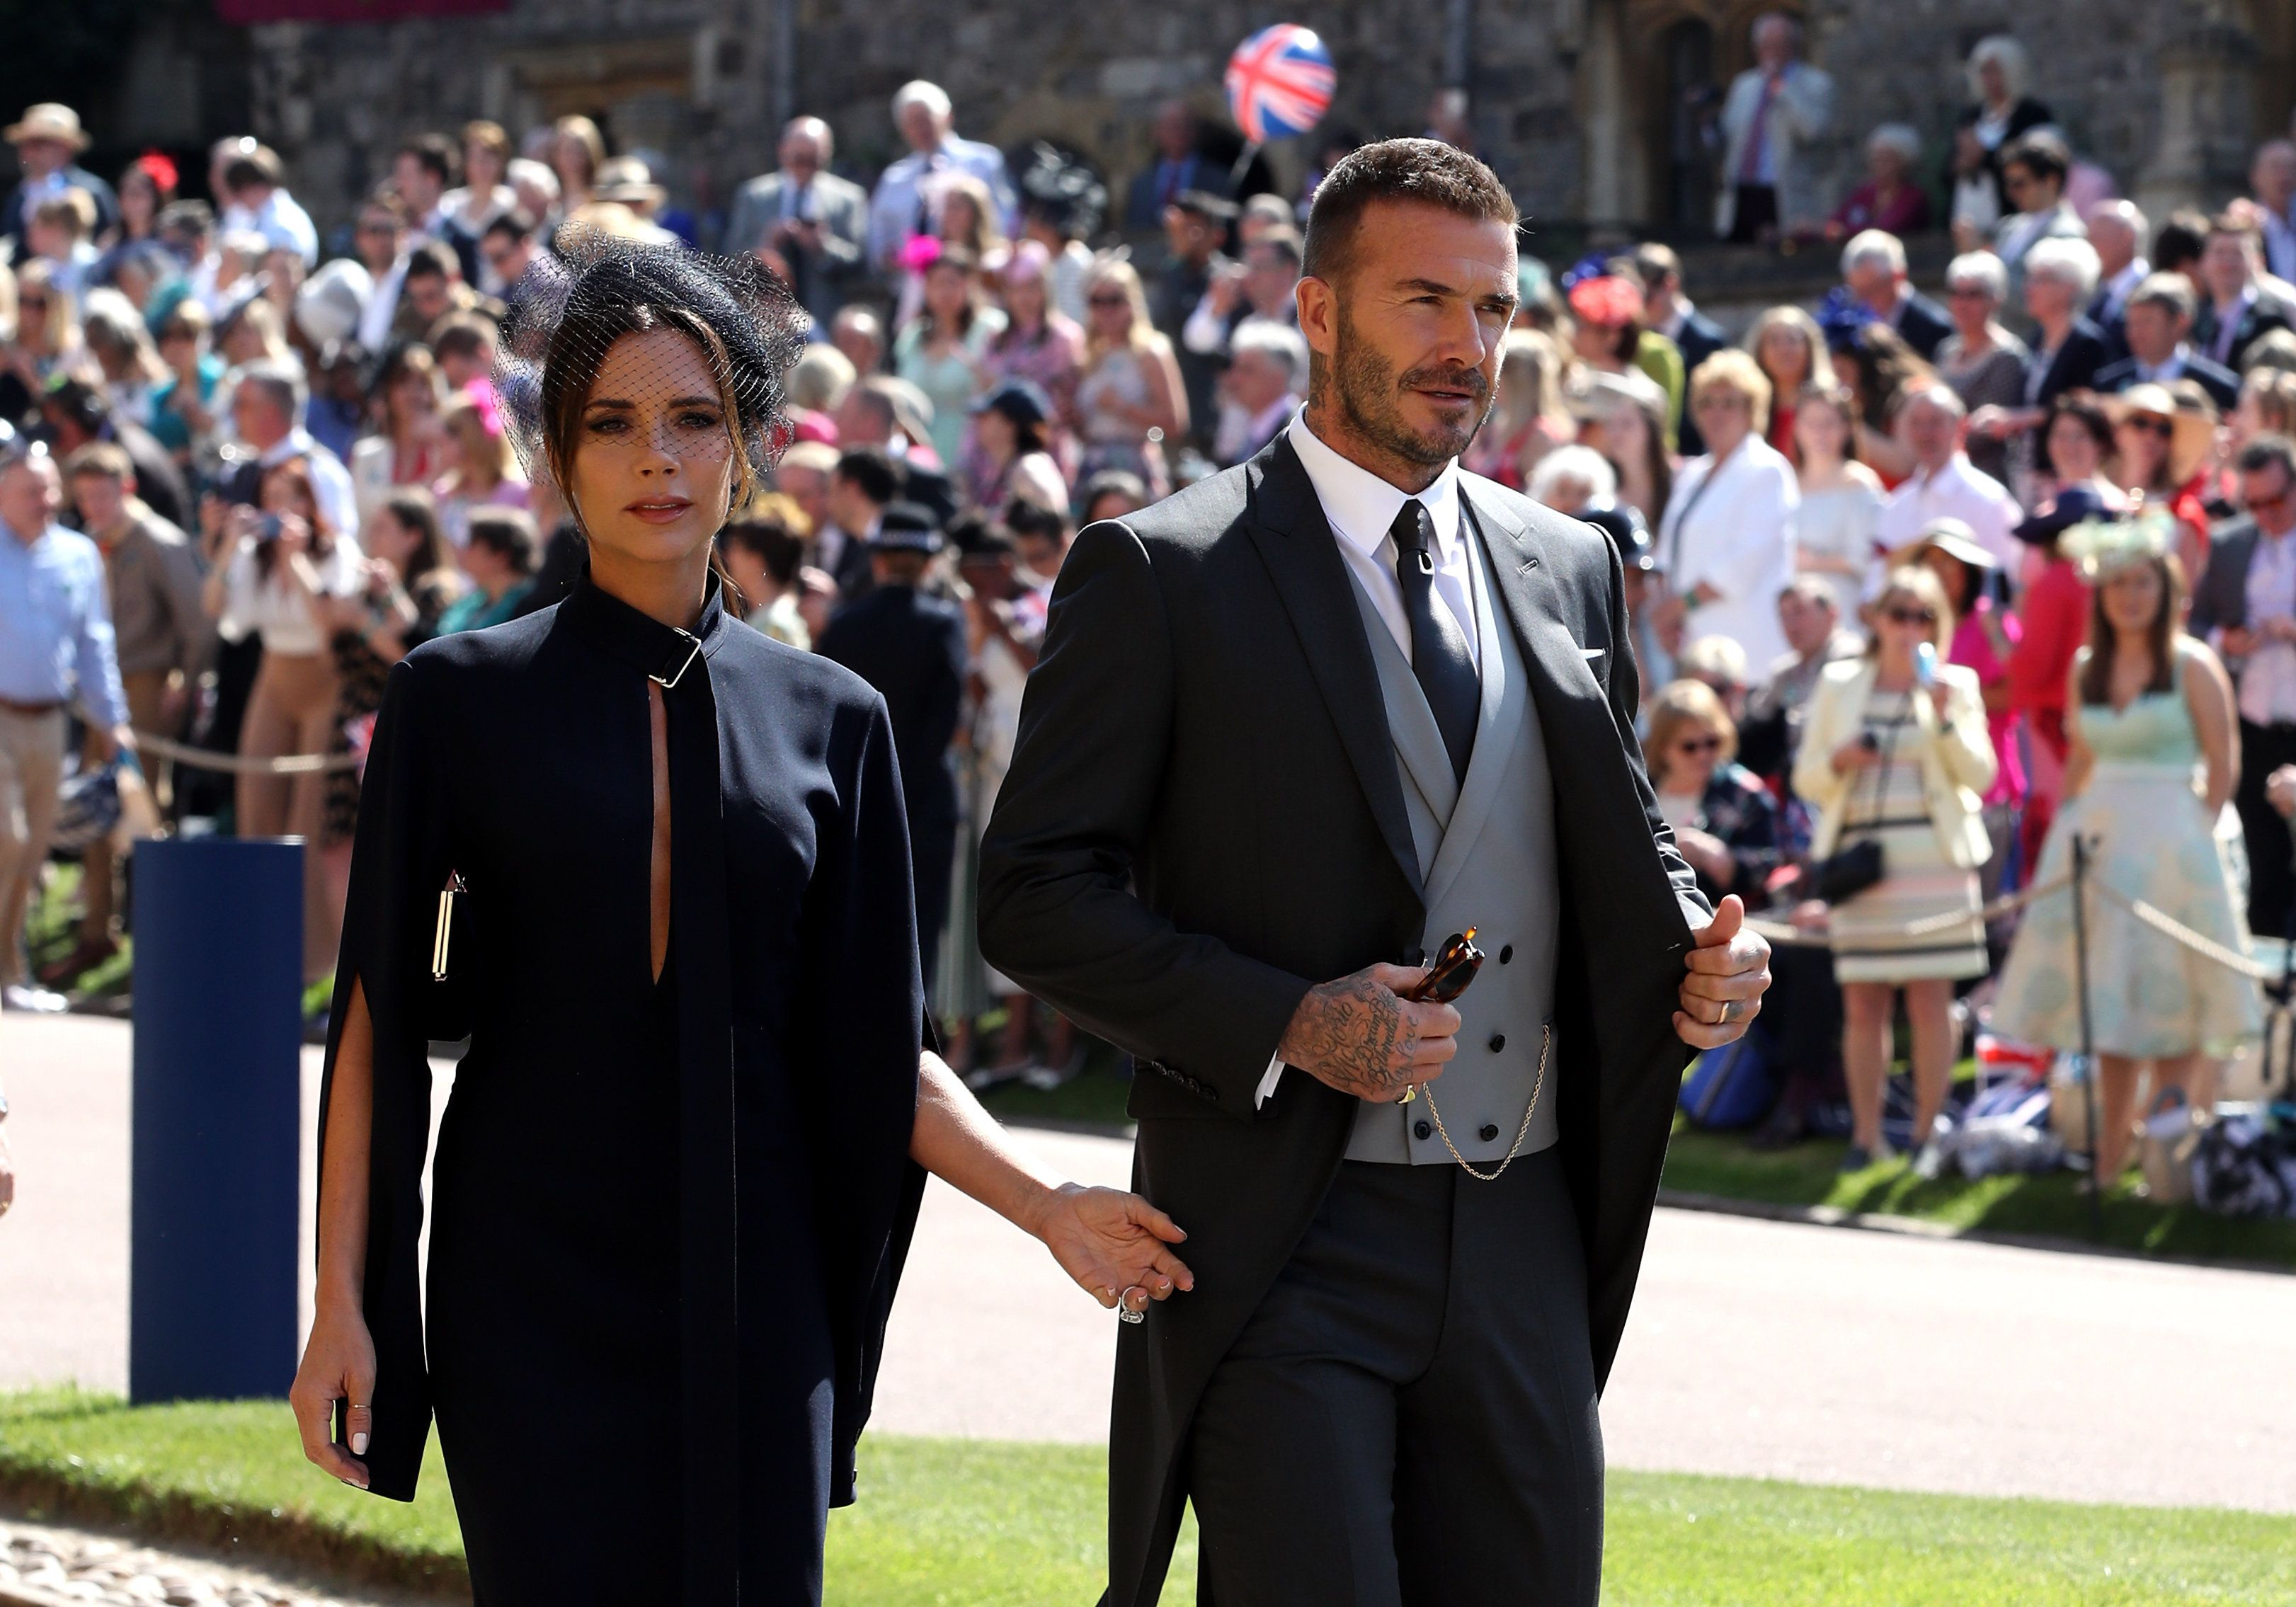 Victoria Beckham Wants You To Know She Did Have Fun At The Royal Wedding